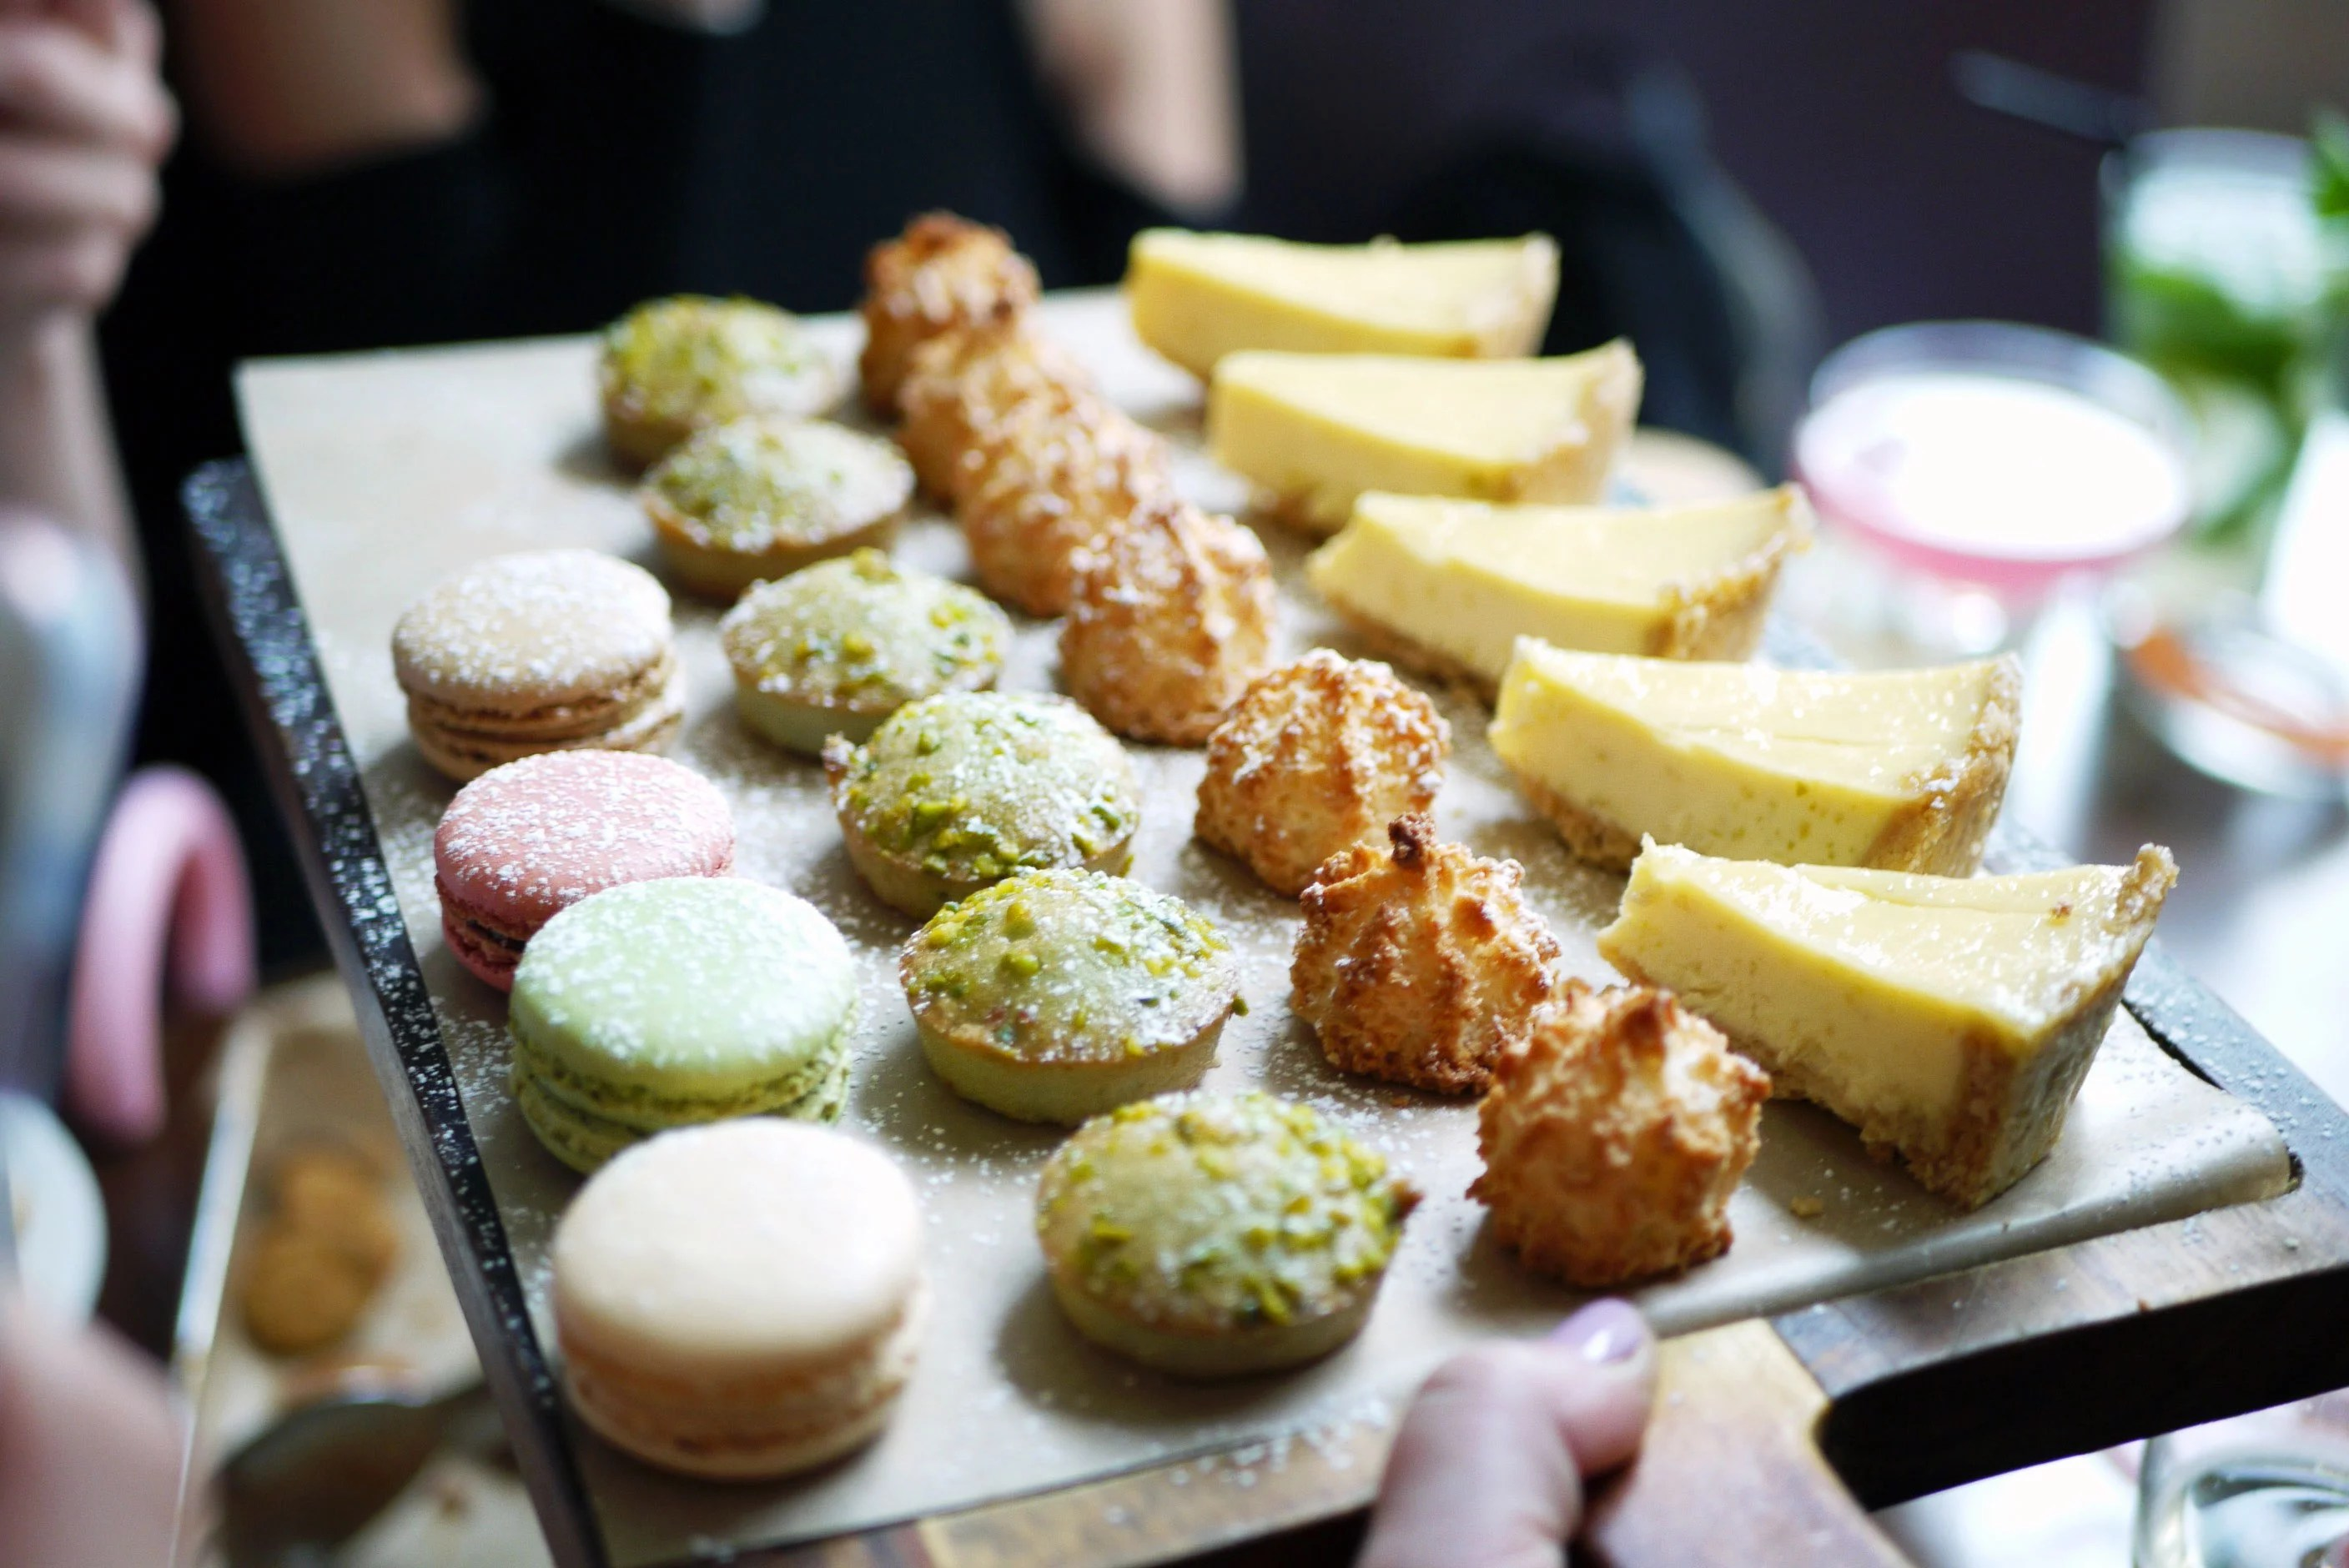 (L-R) Macarons (not on menu?), nutty bites and coconut macaroons (both come together as one dessert) and lemon and lime tart wedges